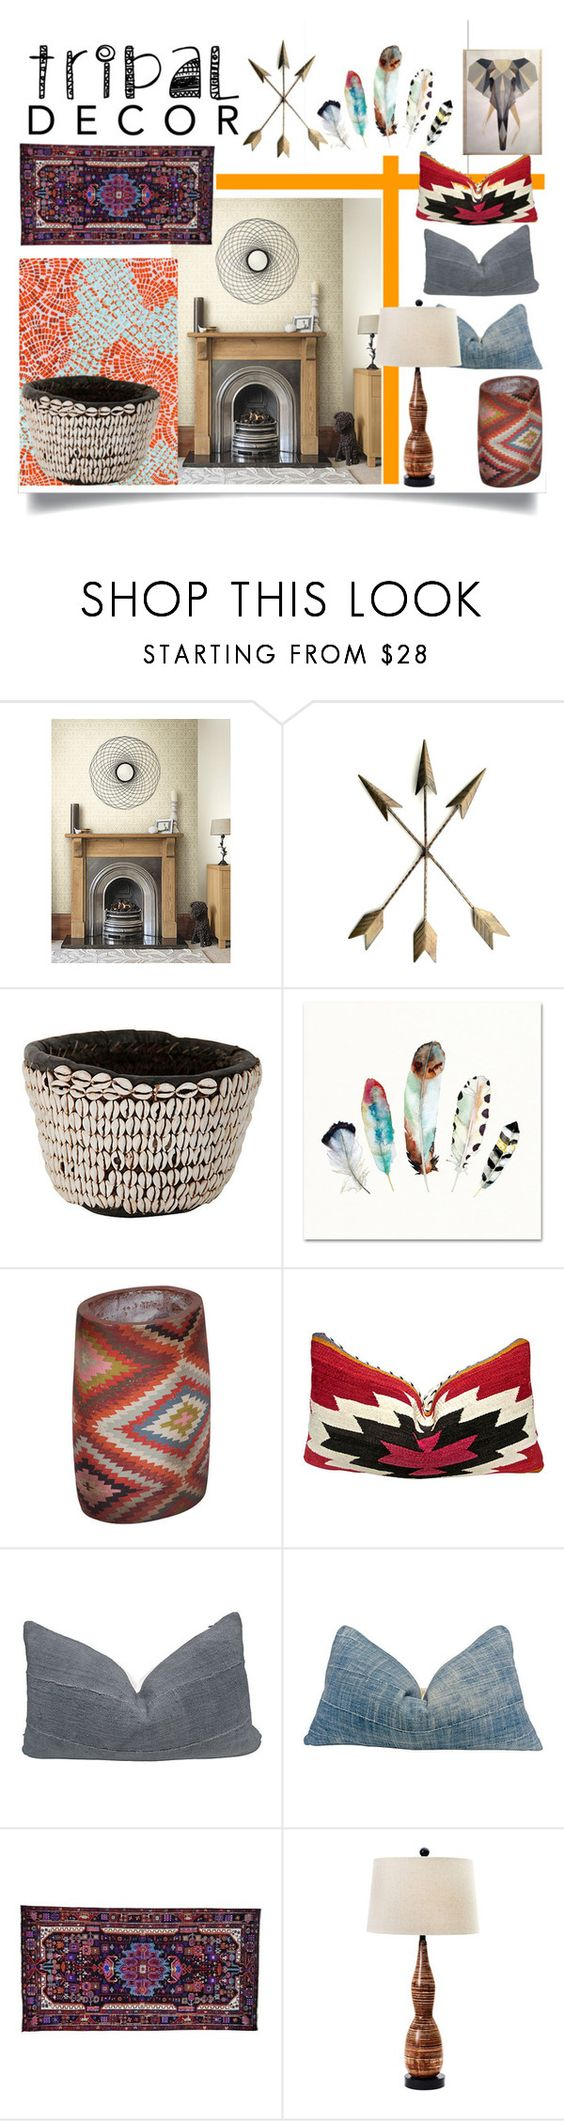 """""""Tribal Decor"""" by jeneric2015 ❤ liked on Polyvore featuring interior, interiors, interior design, home, home decor, interior decorating, York Wallcoverings, Universal Lighting and Decor and tribaldecor"""